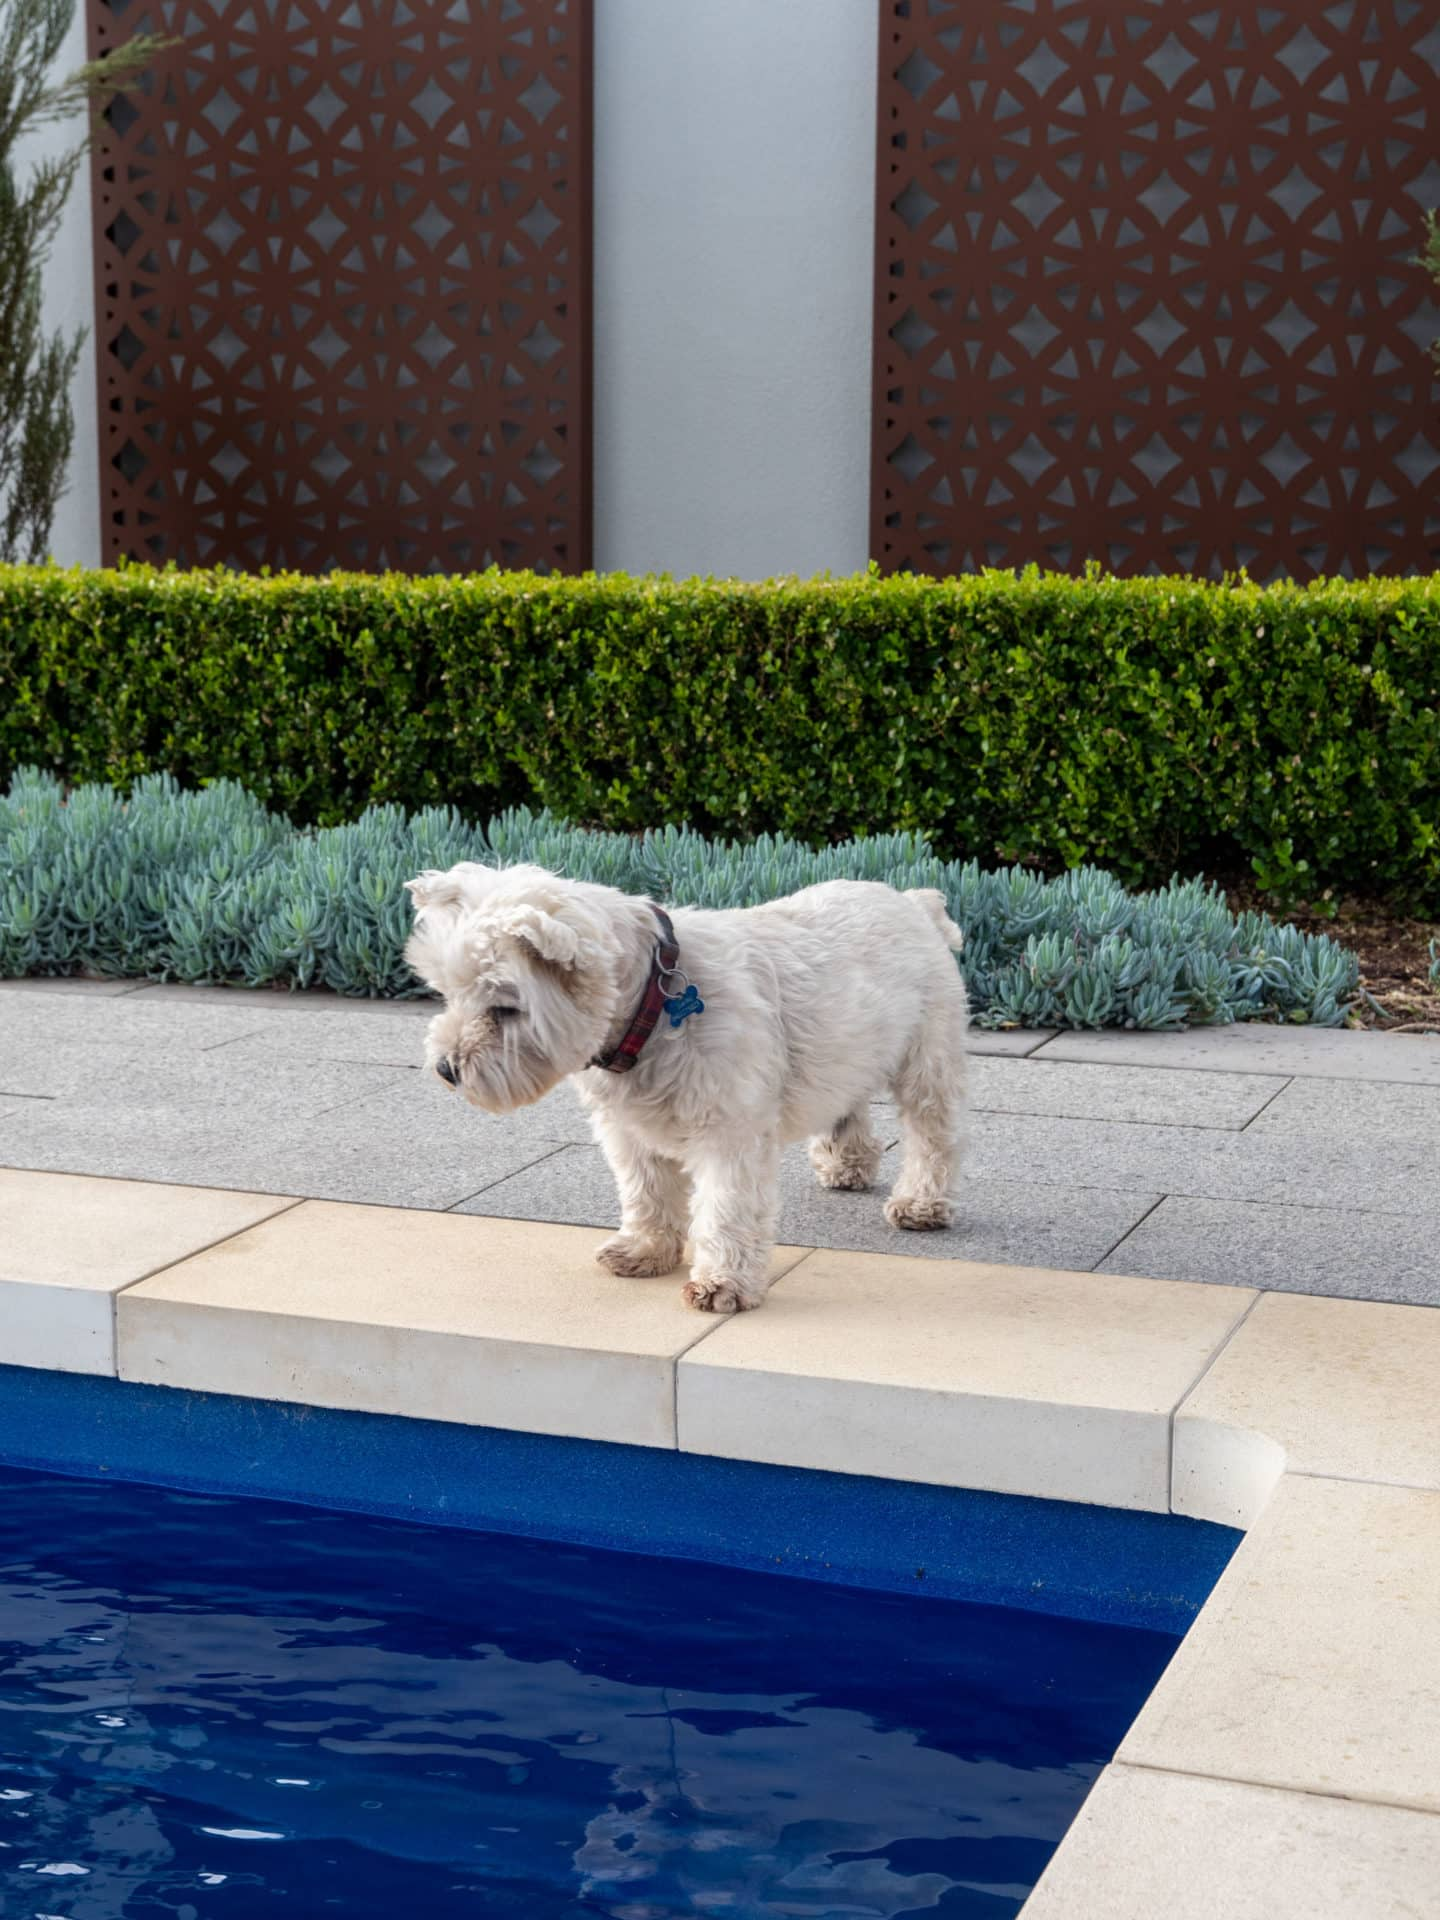 Backyard Inspiration - Building a home for your pampered pet   Australian Outdoor Living